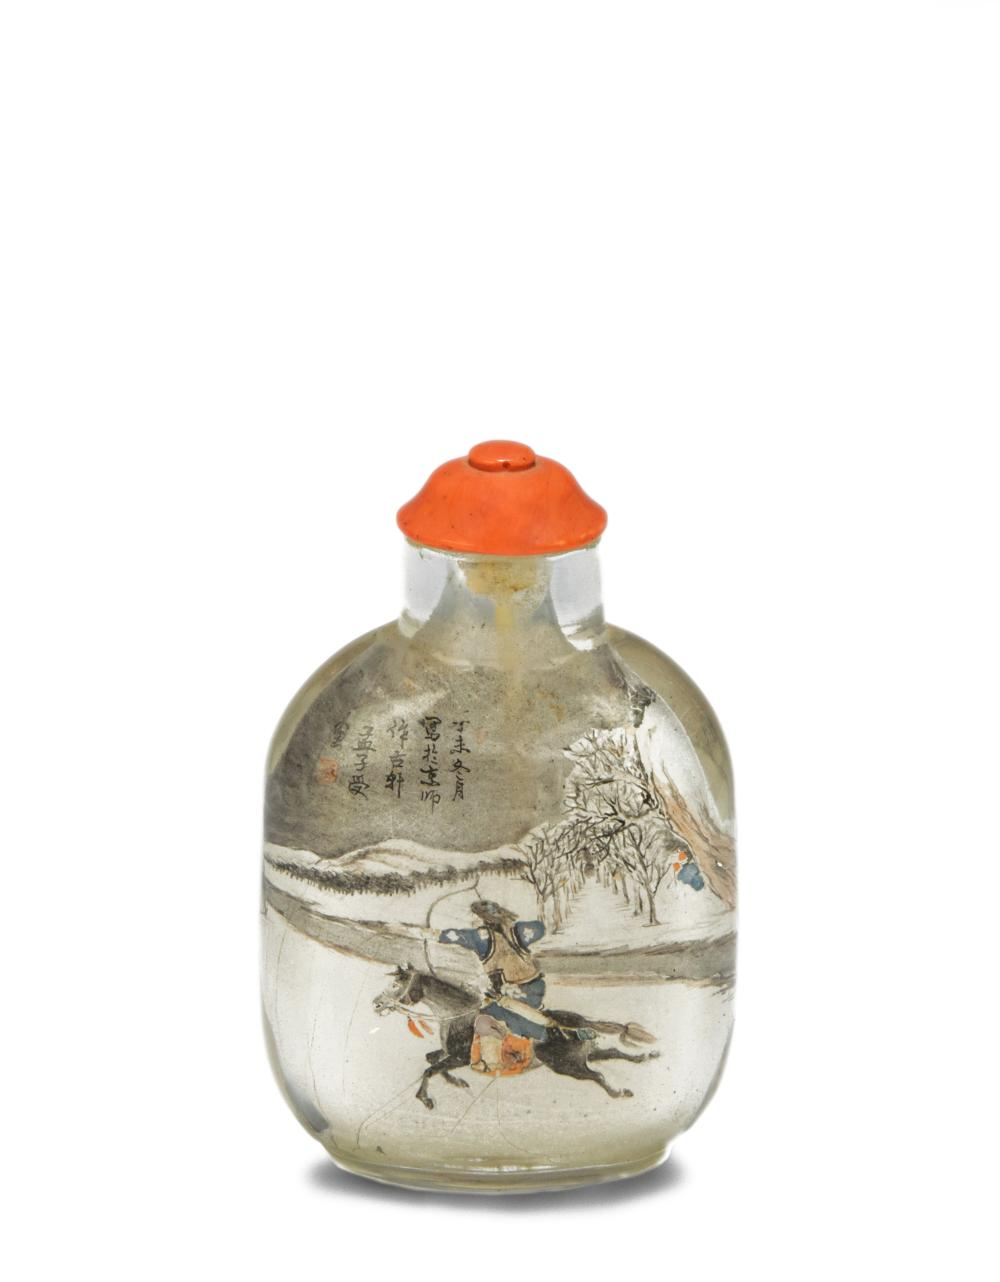 CHINESE INSIDE-PAINTED SNUFF BOTTLE BY MENG ZISHOU